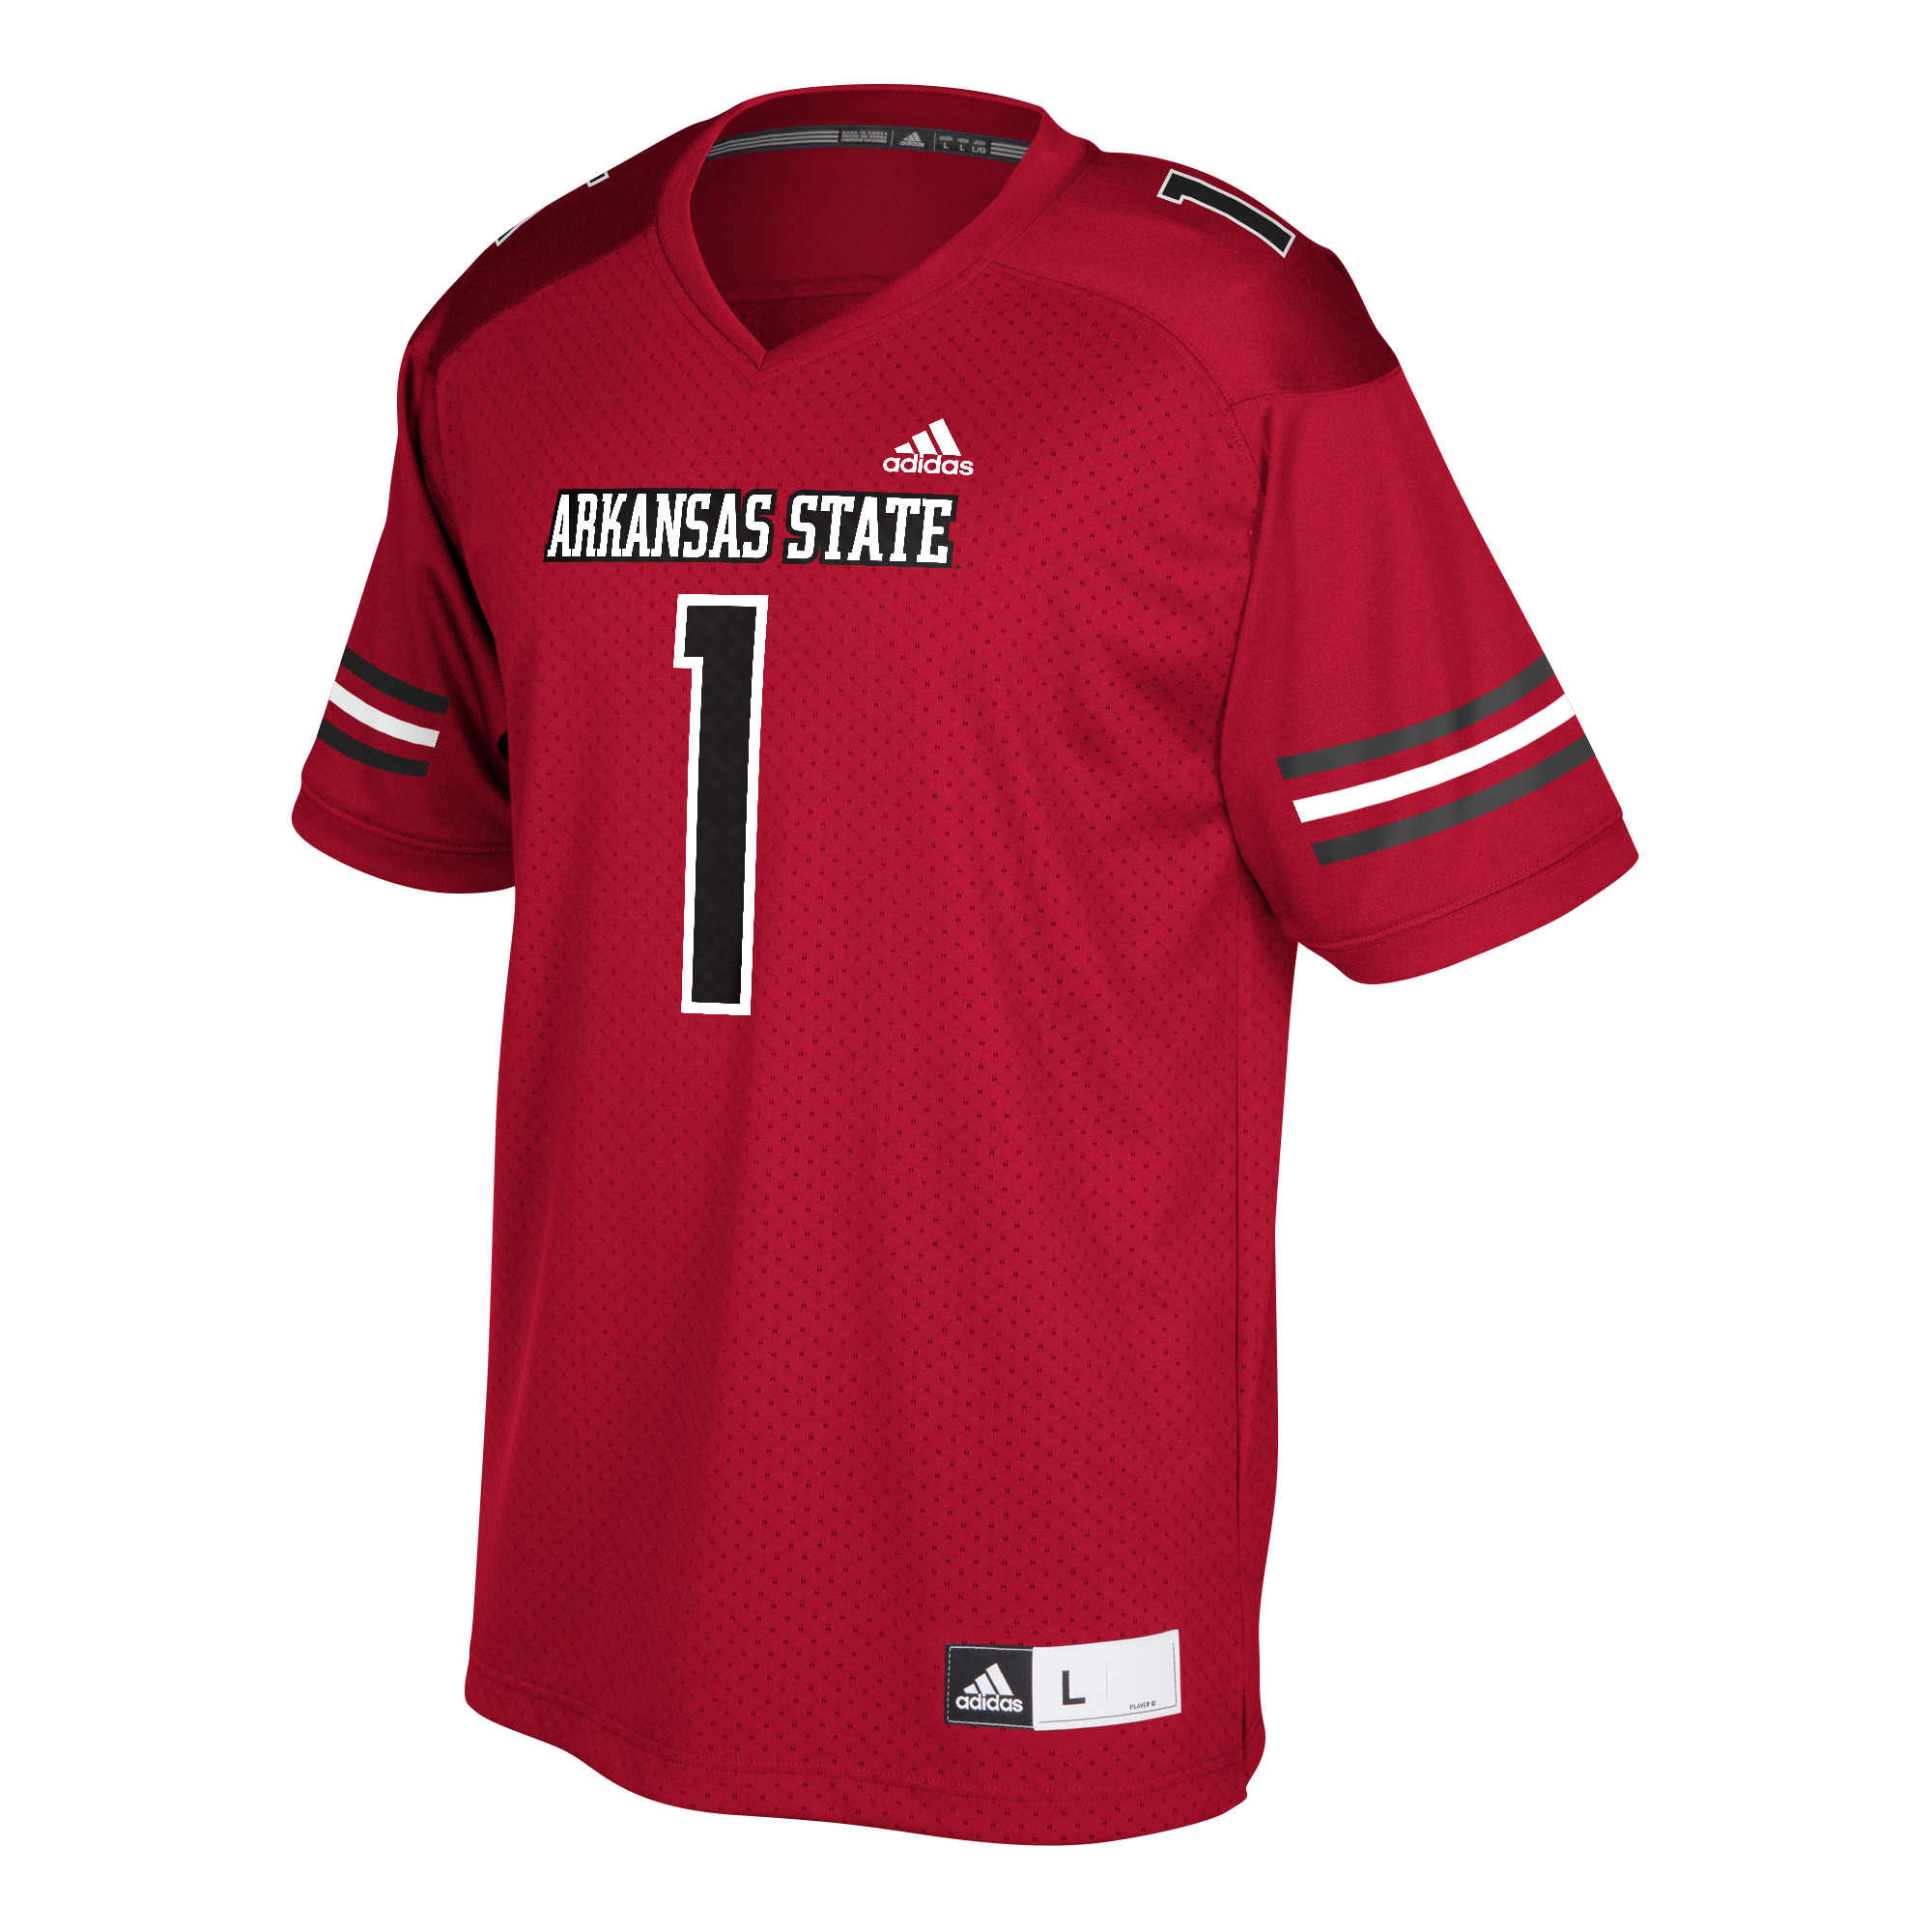 Arkansas State Replica Jersey